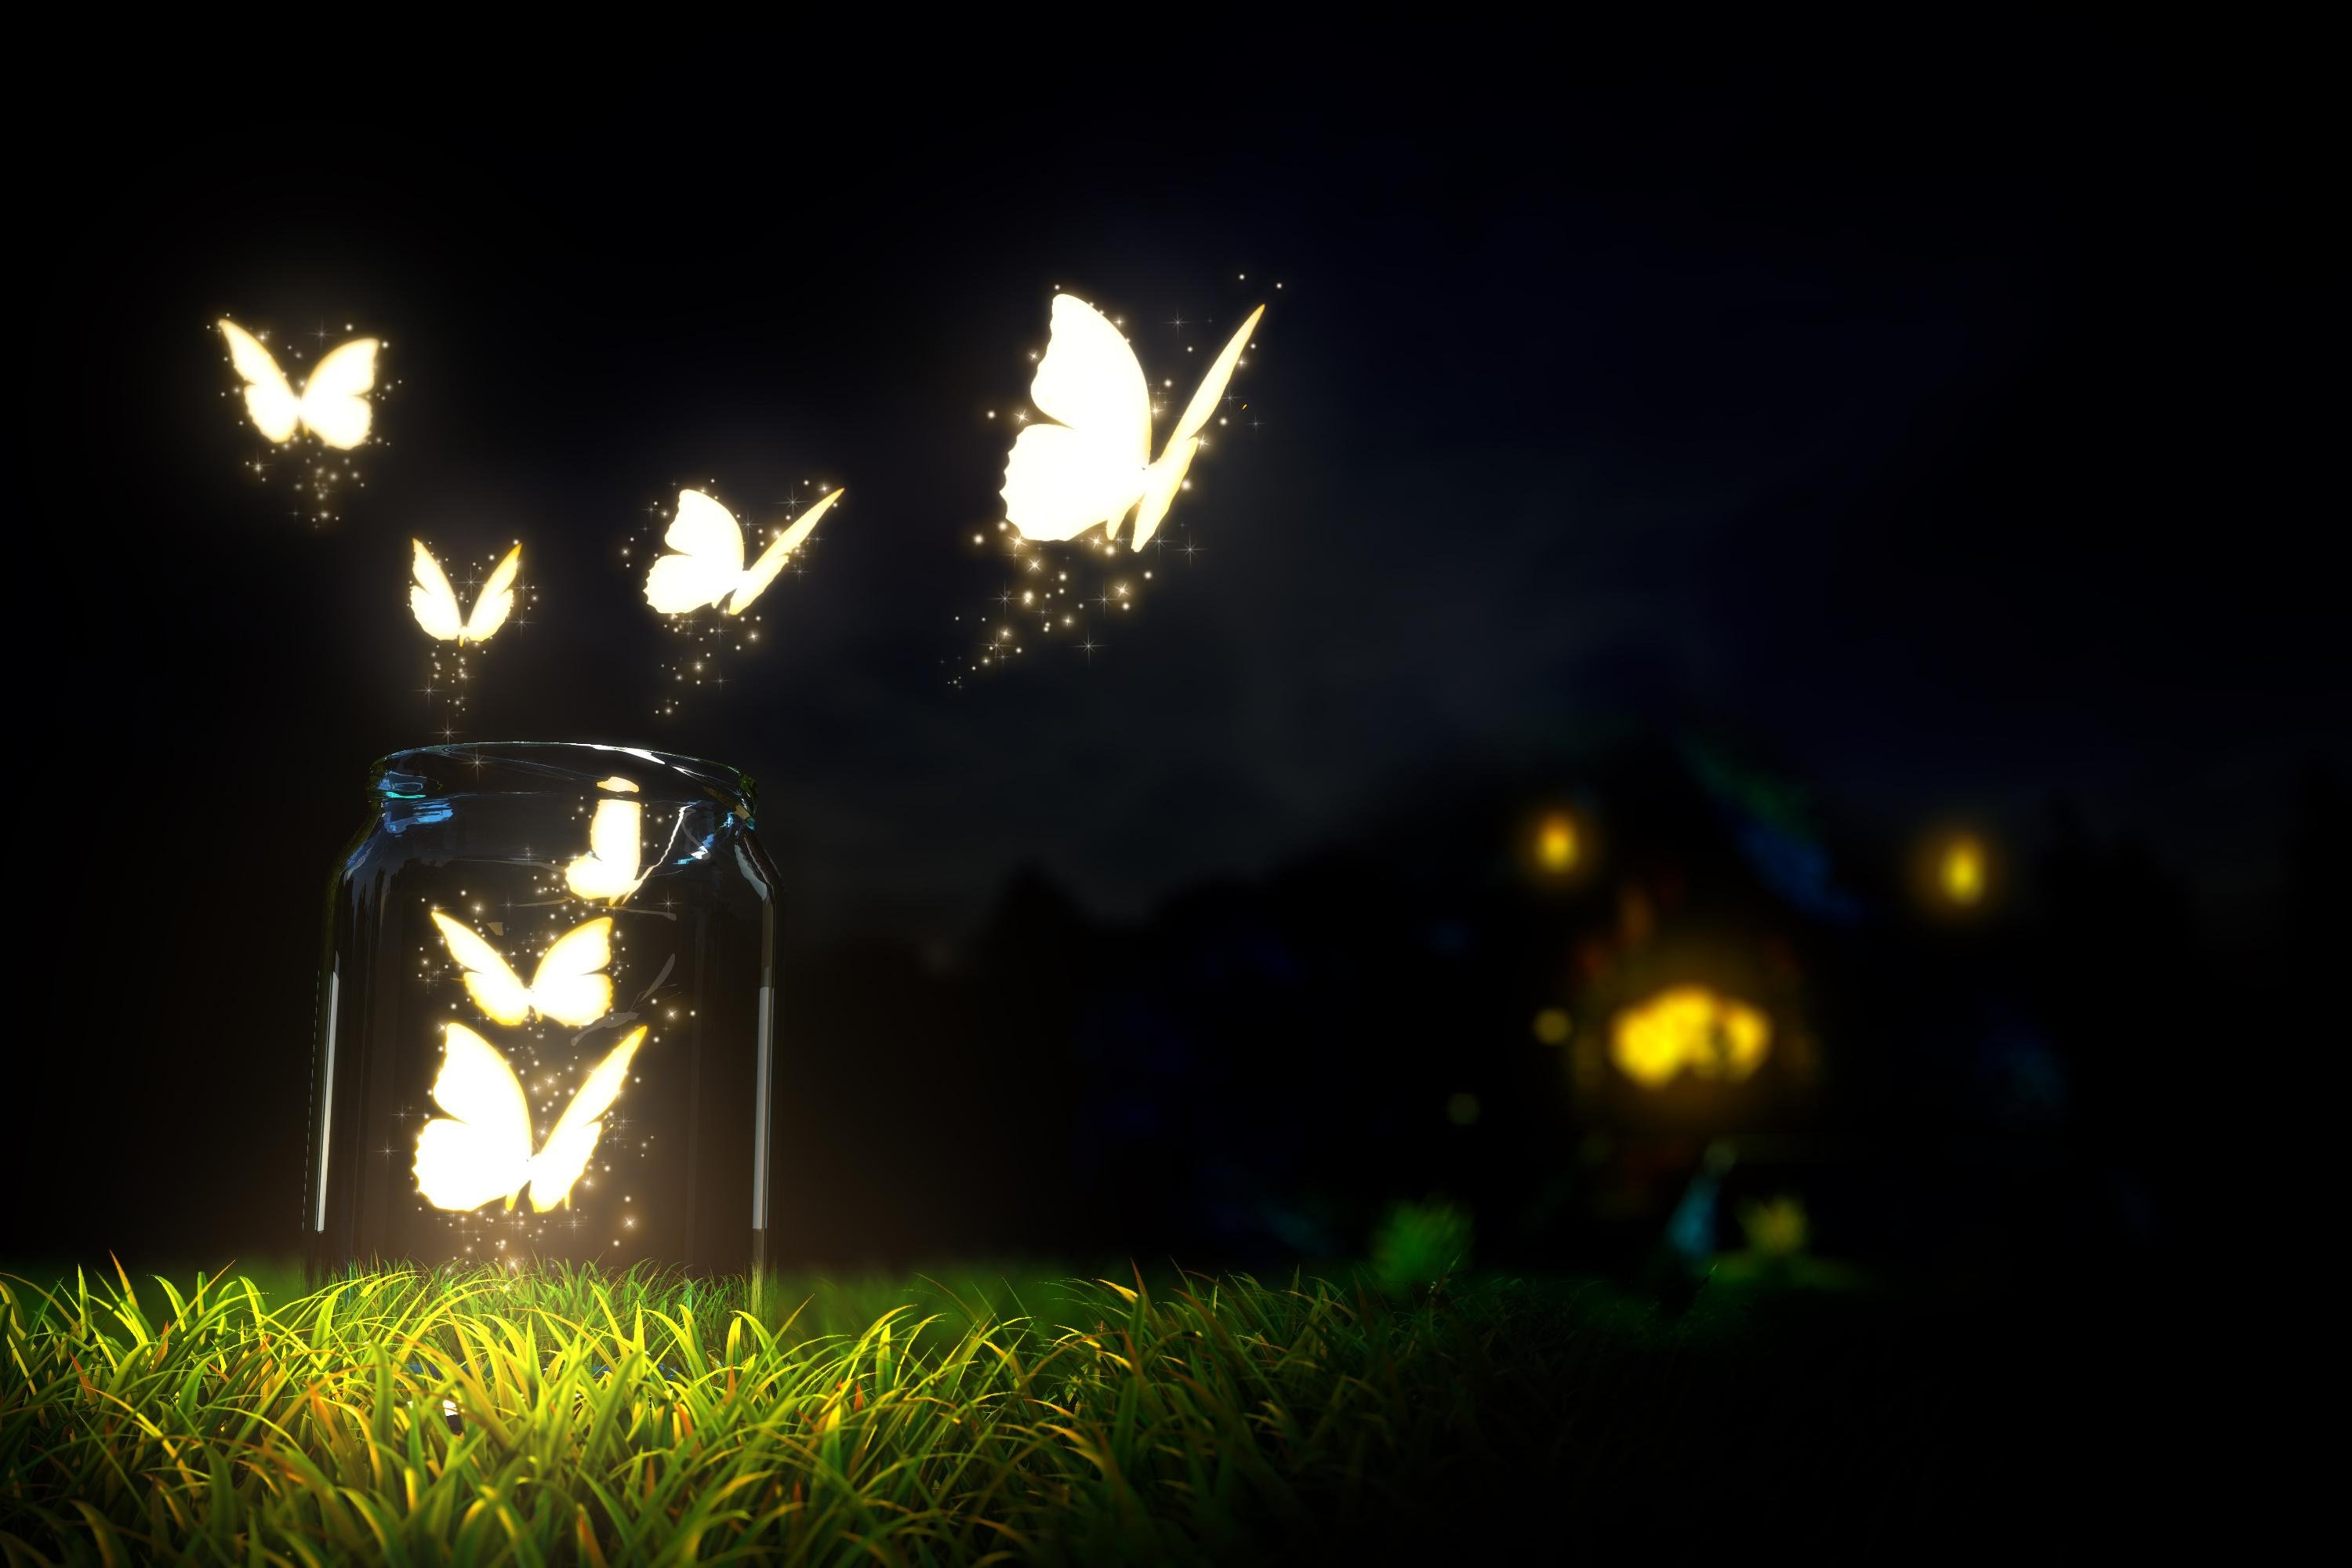 Glowing Butterfly Wallpapers HD Desktop and Mobile Backgrounds 3000x2000